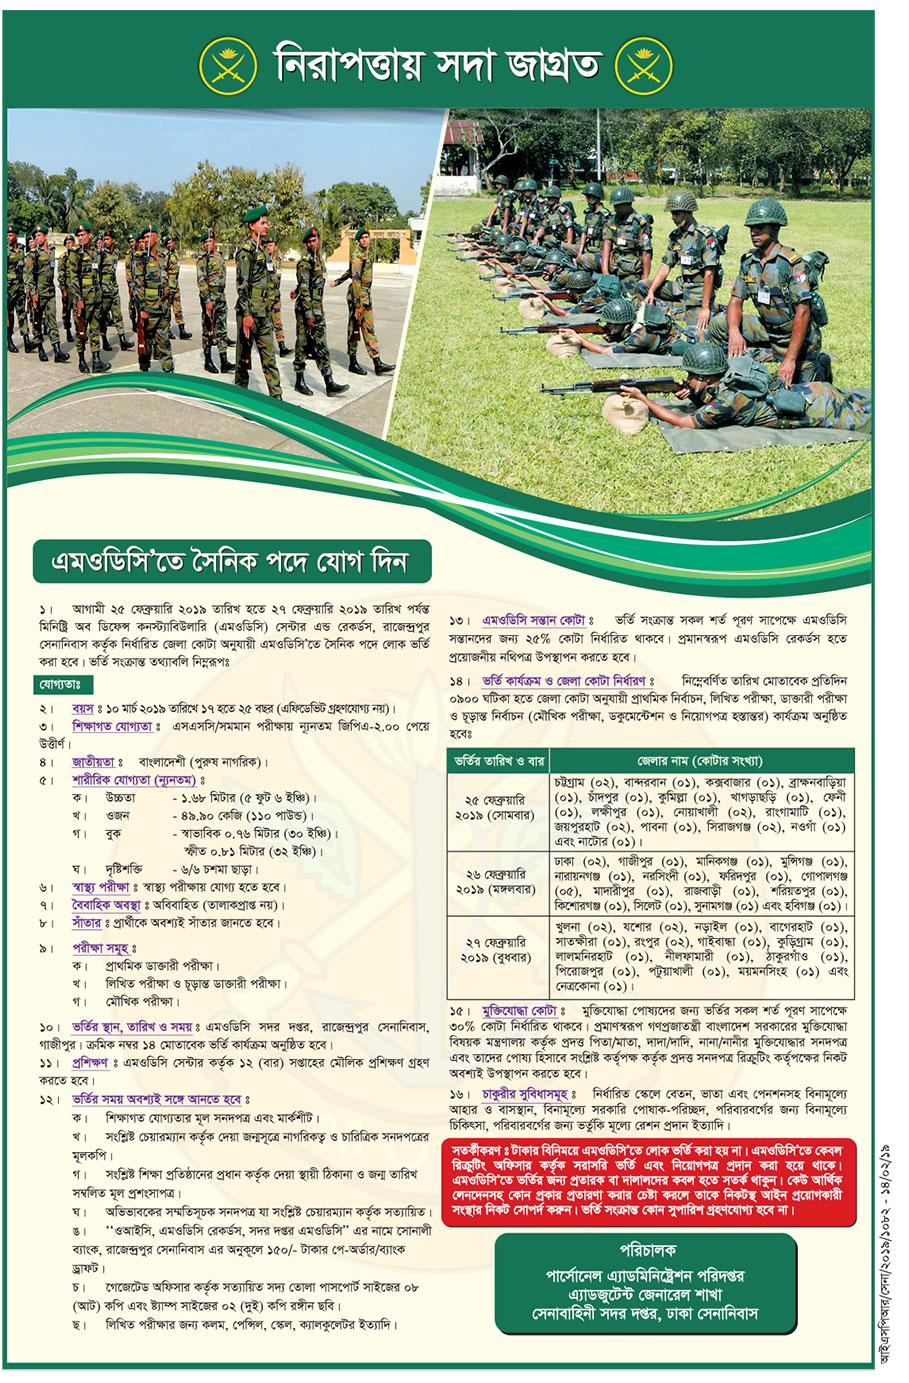 Bangladesh Army MODC Sainik Recruitment Circular 2019